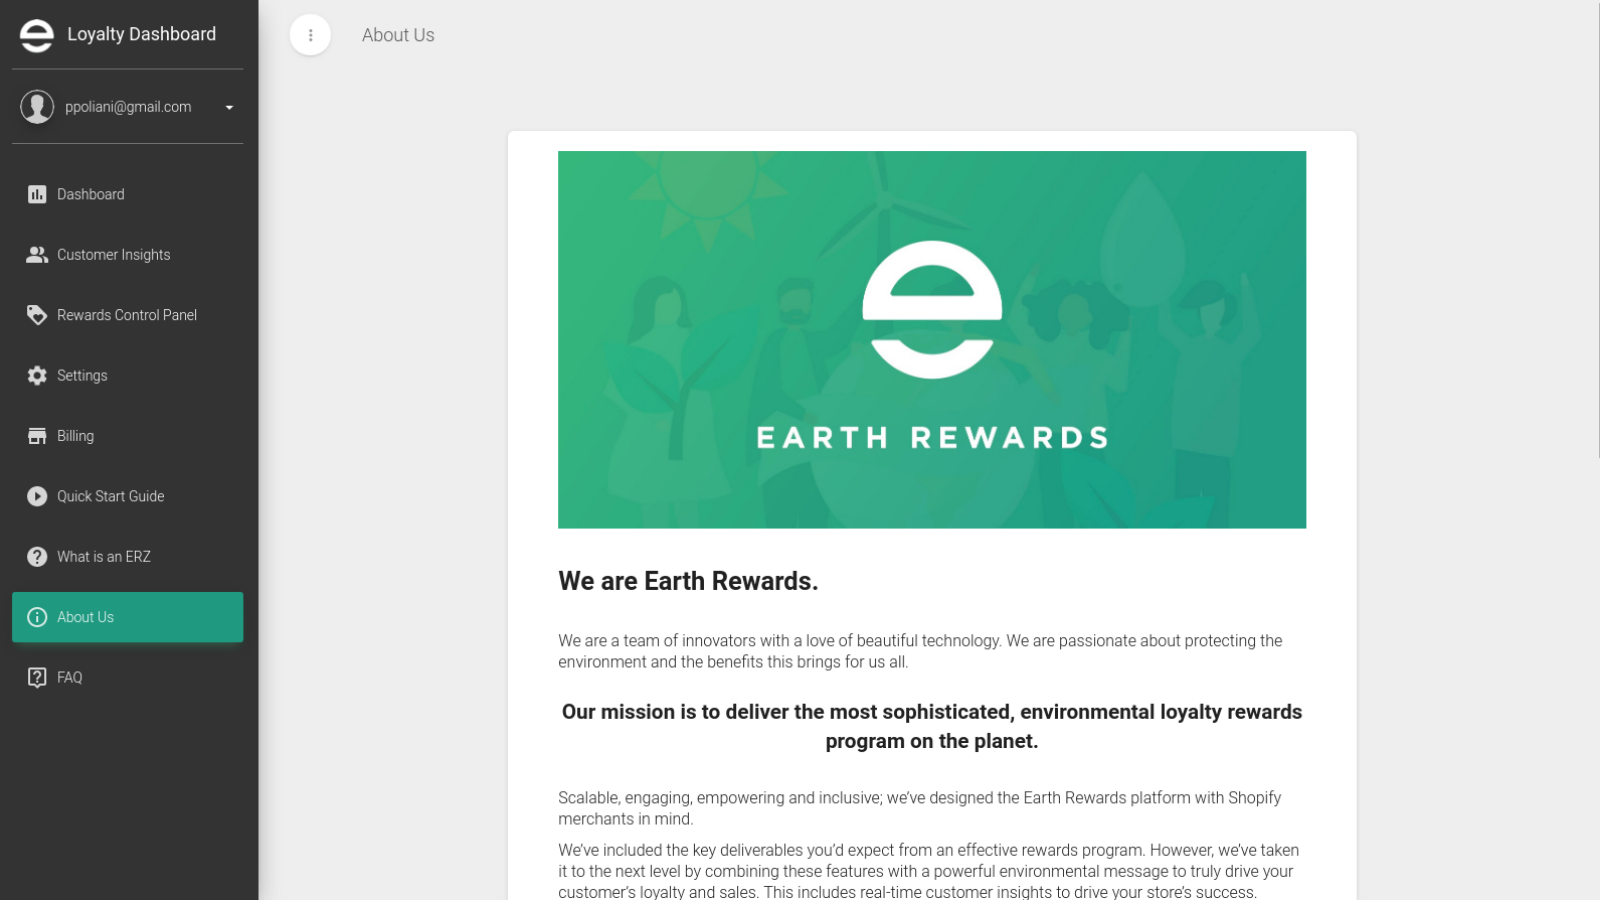 Find out more about how Earth Rewards benefits the environment.